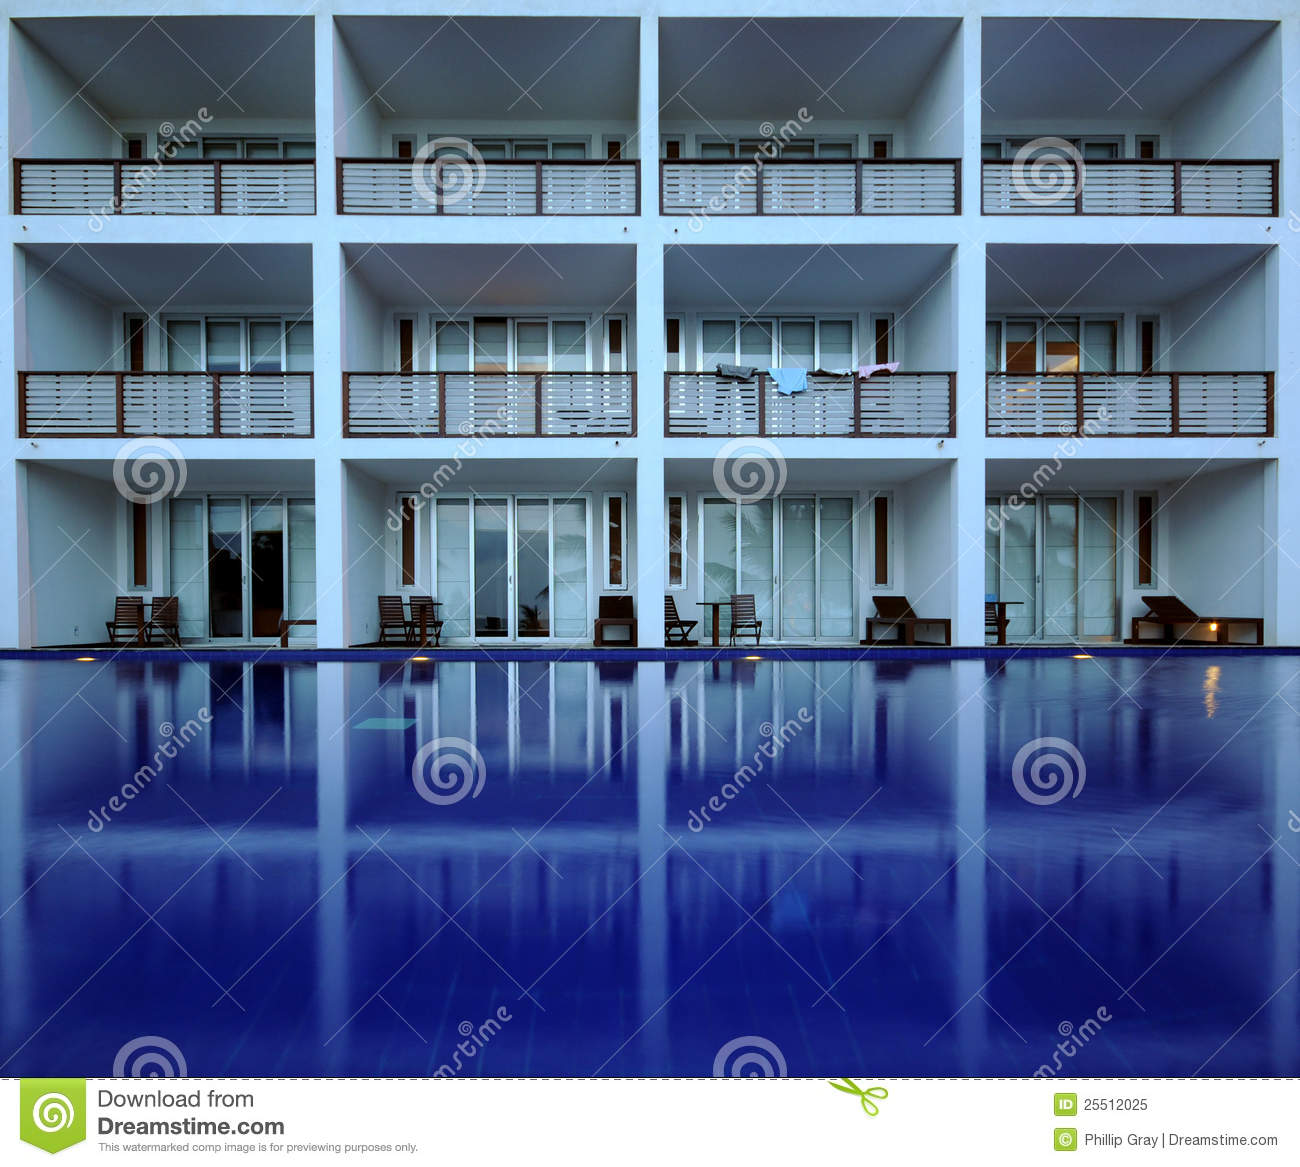 hotel pool balkon stockbild bild von blau r cksortierung 25512025. Black Bedroom Furniture Sets. Home Design Ideas